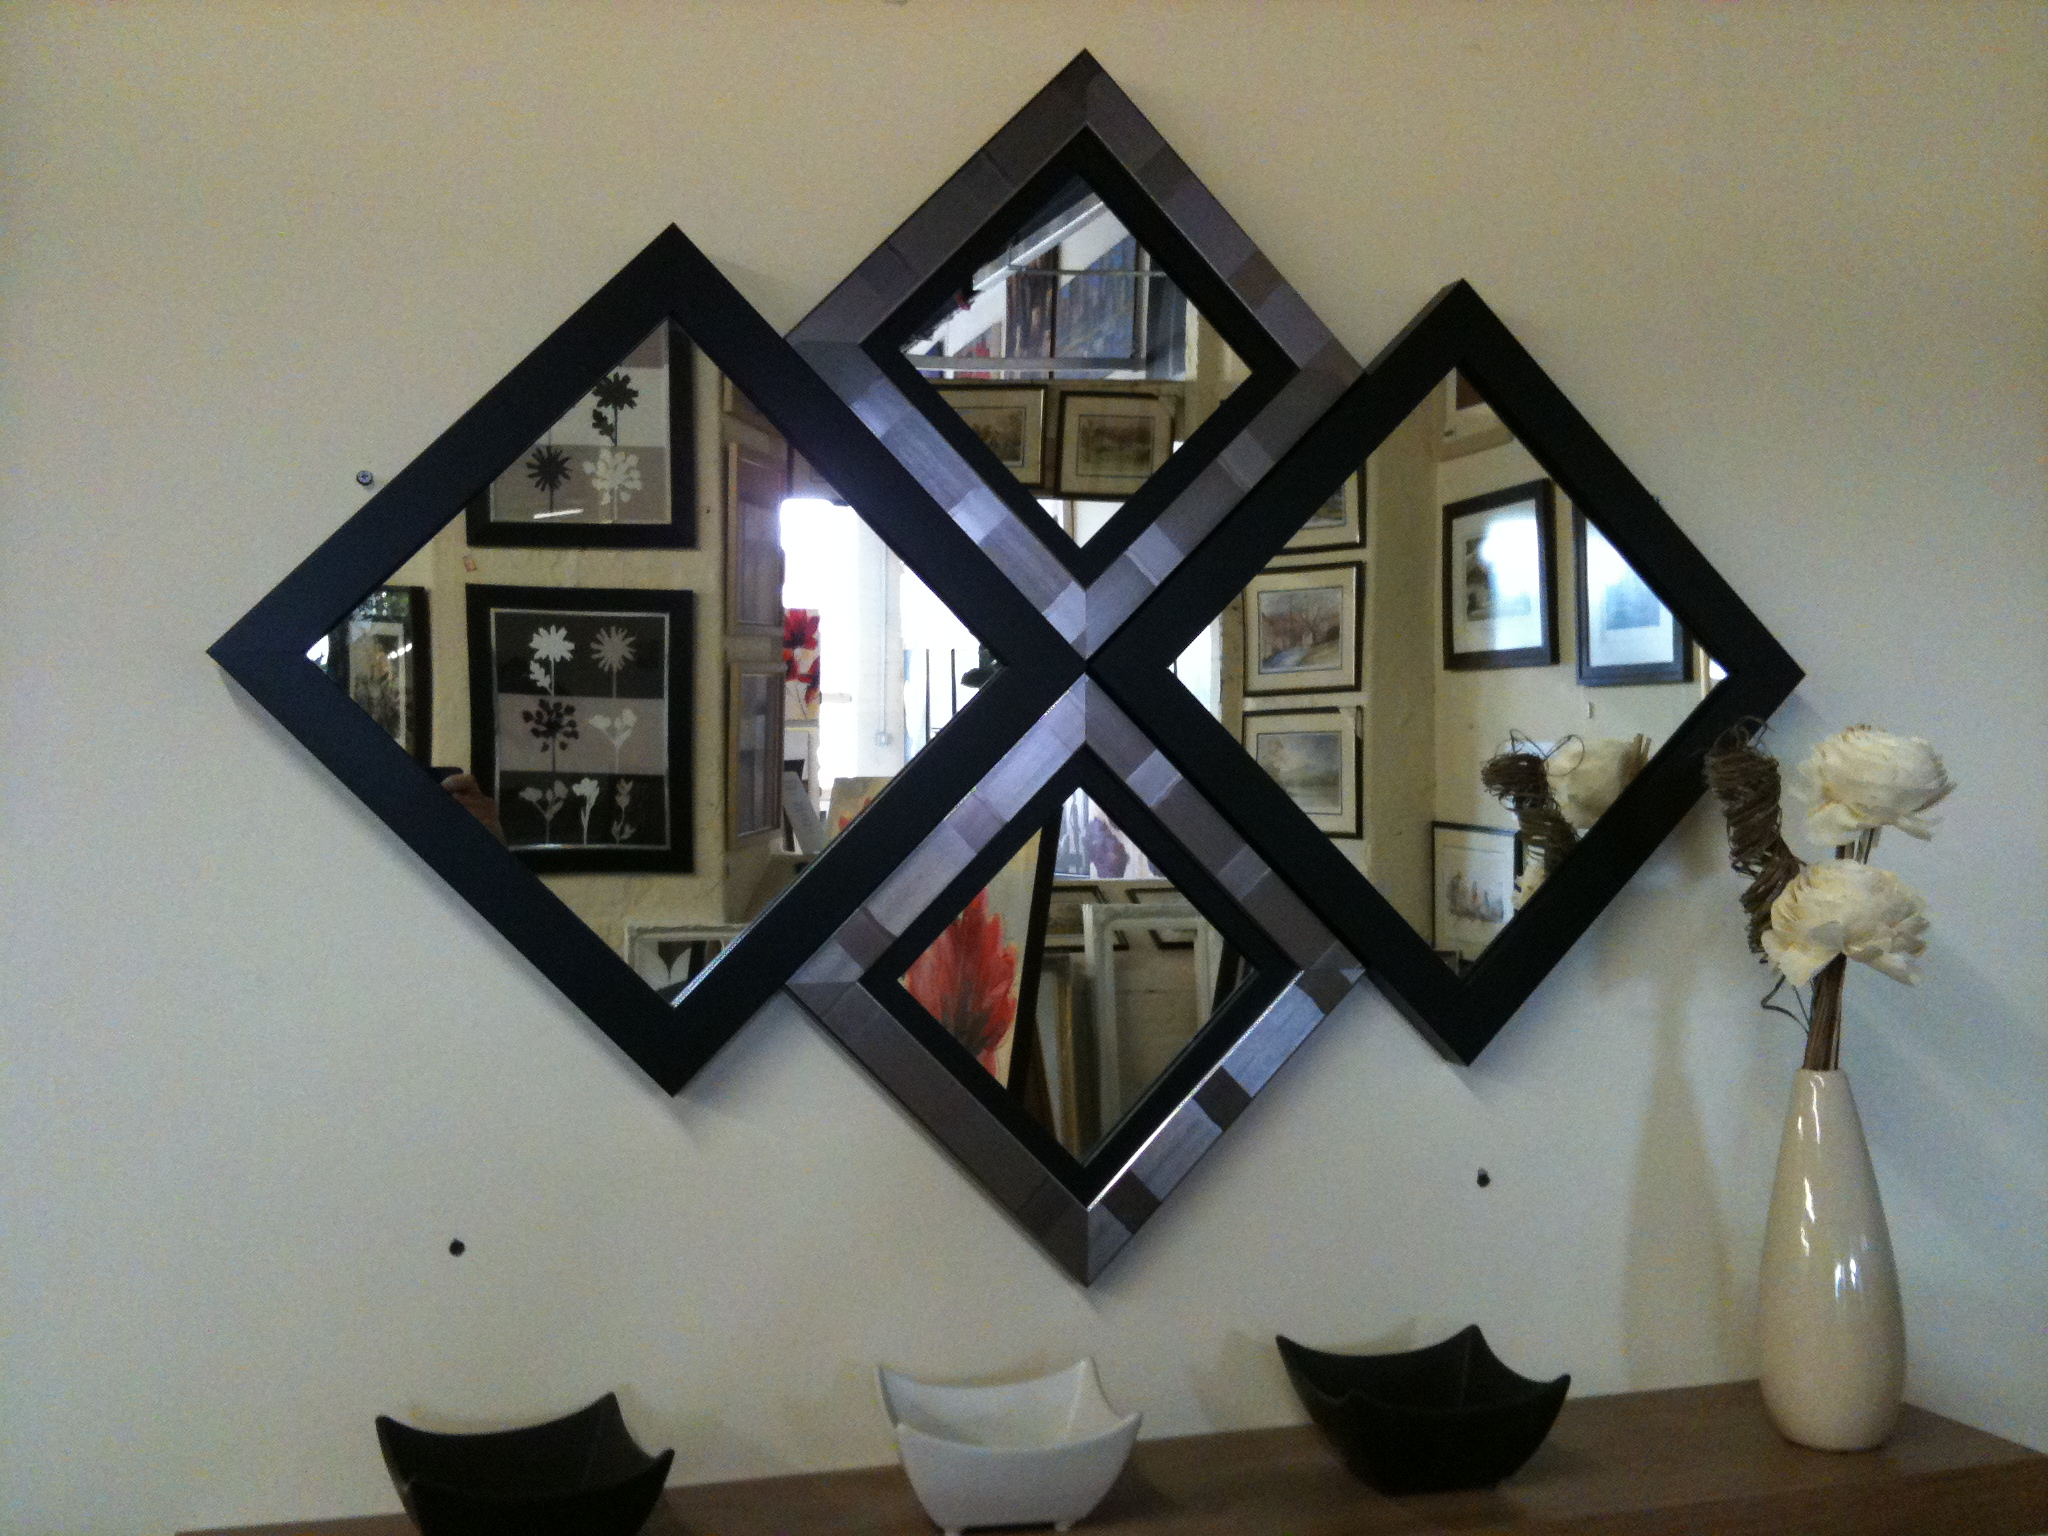 NEW MODERN BLACK/SILVER DIAMOND WALL MIRROR 115 X 86 CM